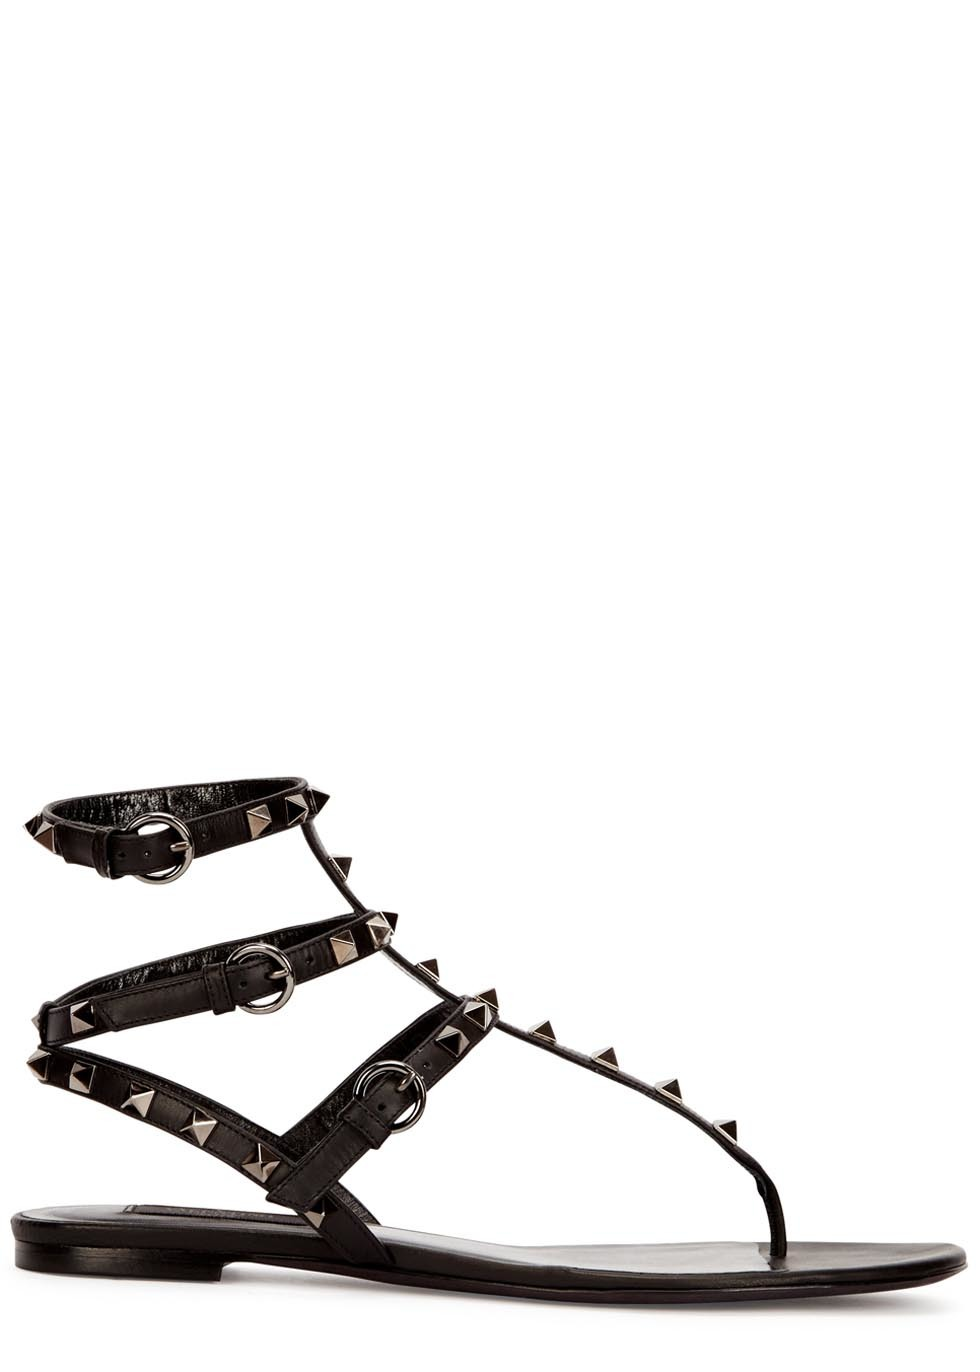 Rockstud Black Leather Sandals - secondary colour: silver; predominant colour: black; occasions: casual, creative work; material: leather; heel height: flat; embellishment: studs; ankle detail: ankle strap; heel: standard; toe: toe thongs; style: standard; finish: plain; pattern: plain; season: a/w 2015; wardrobe: highlight